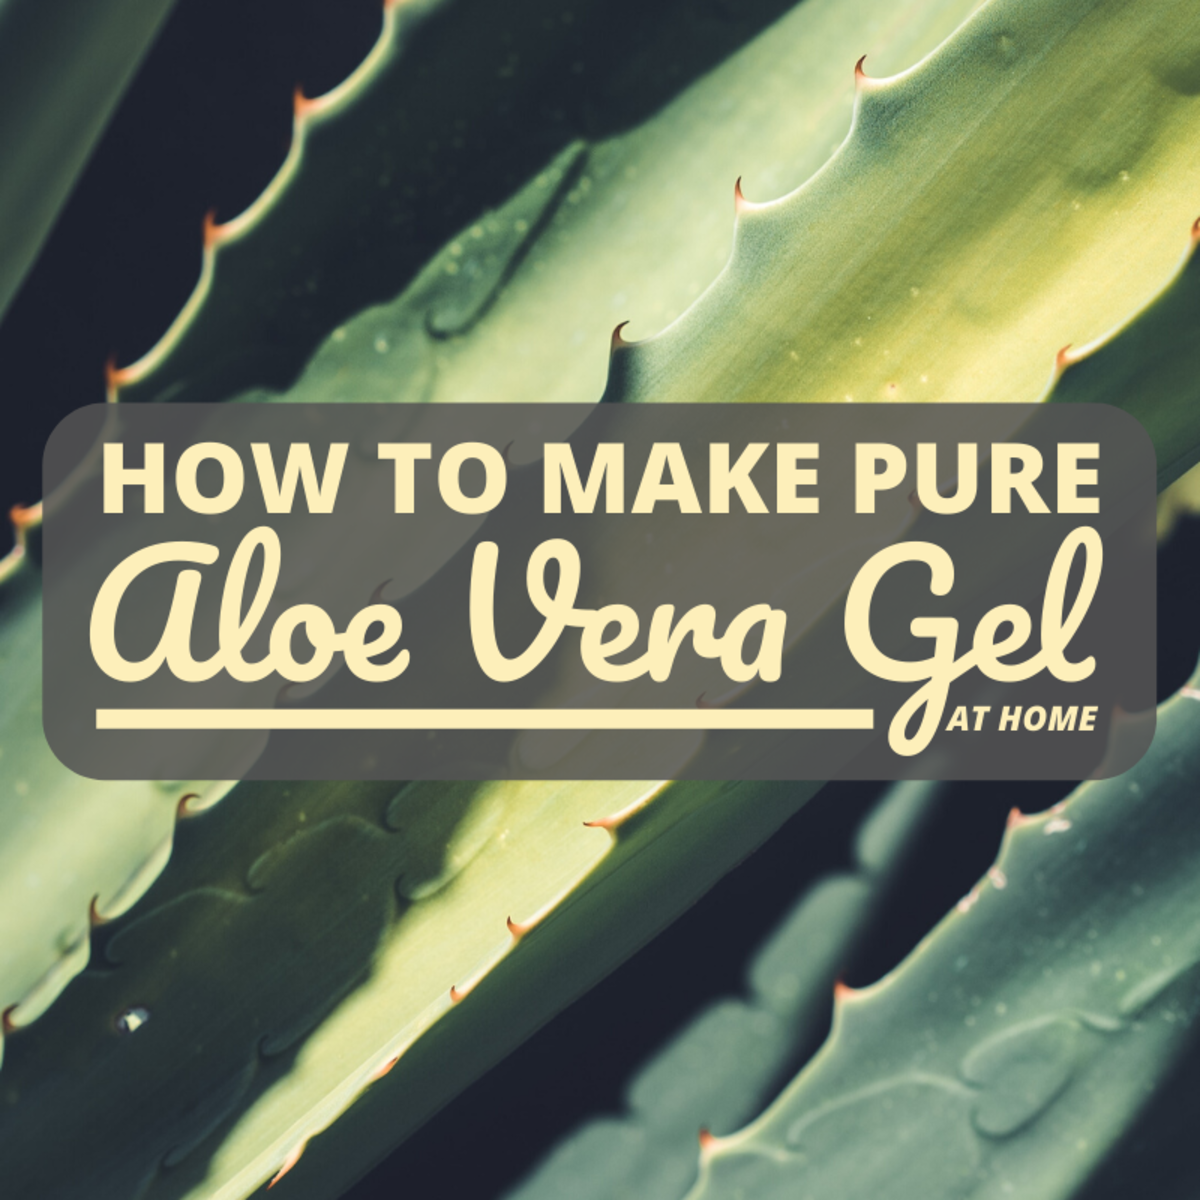 How to Make Pure Aloe Vera Gel at Home